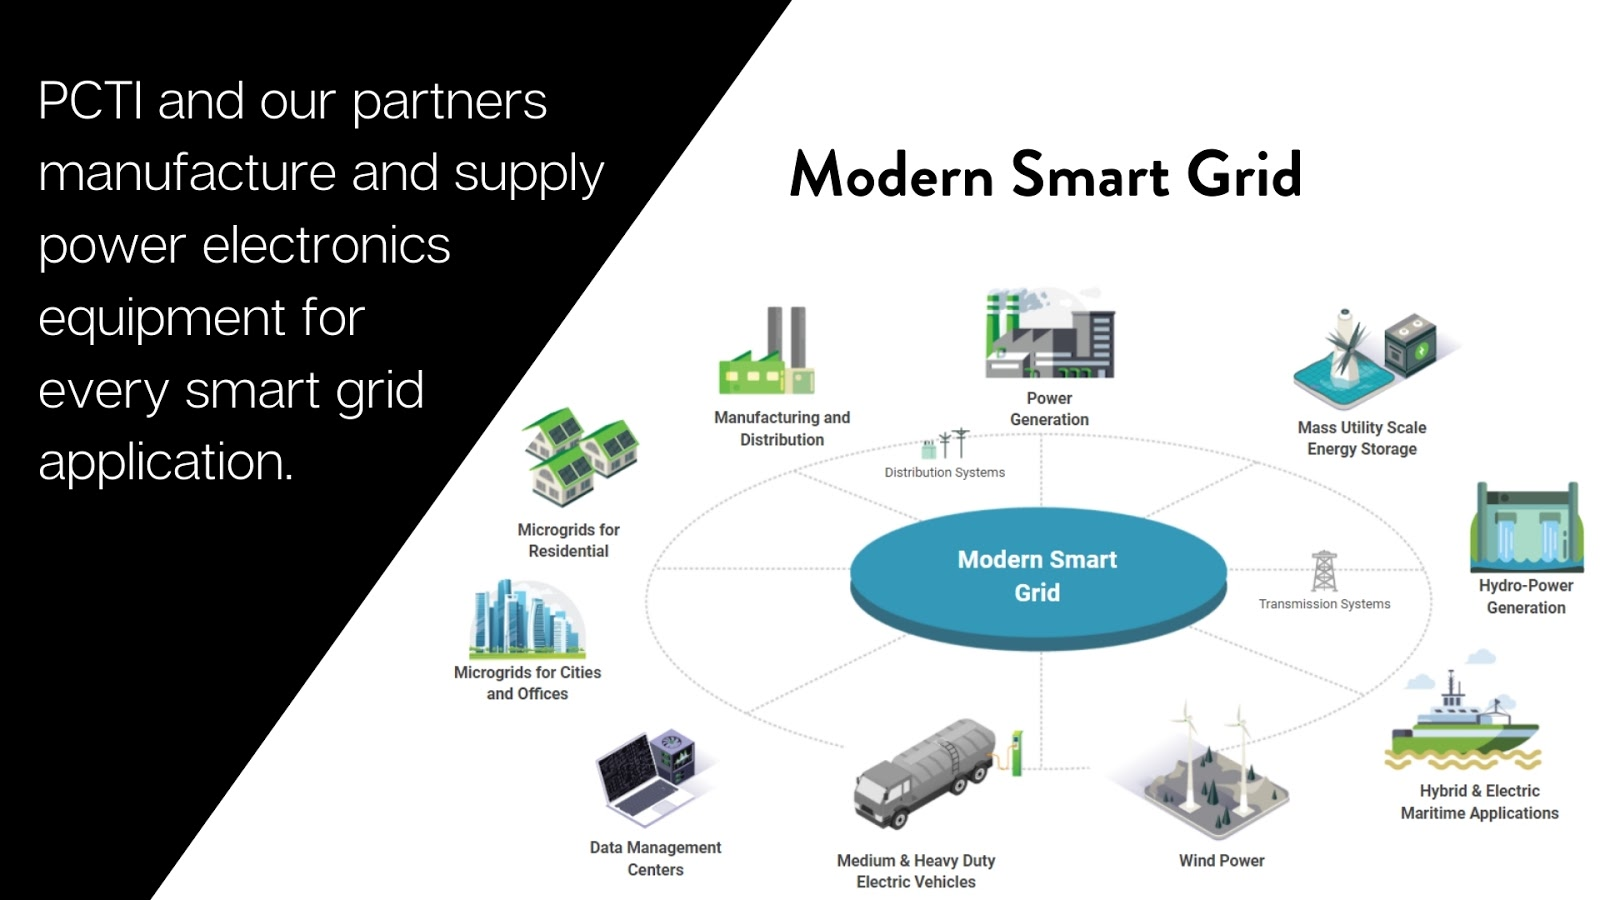 PCTI and our partners manufacture and supply power electronics equipment for every smart grid application